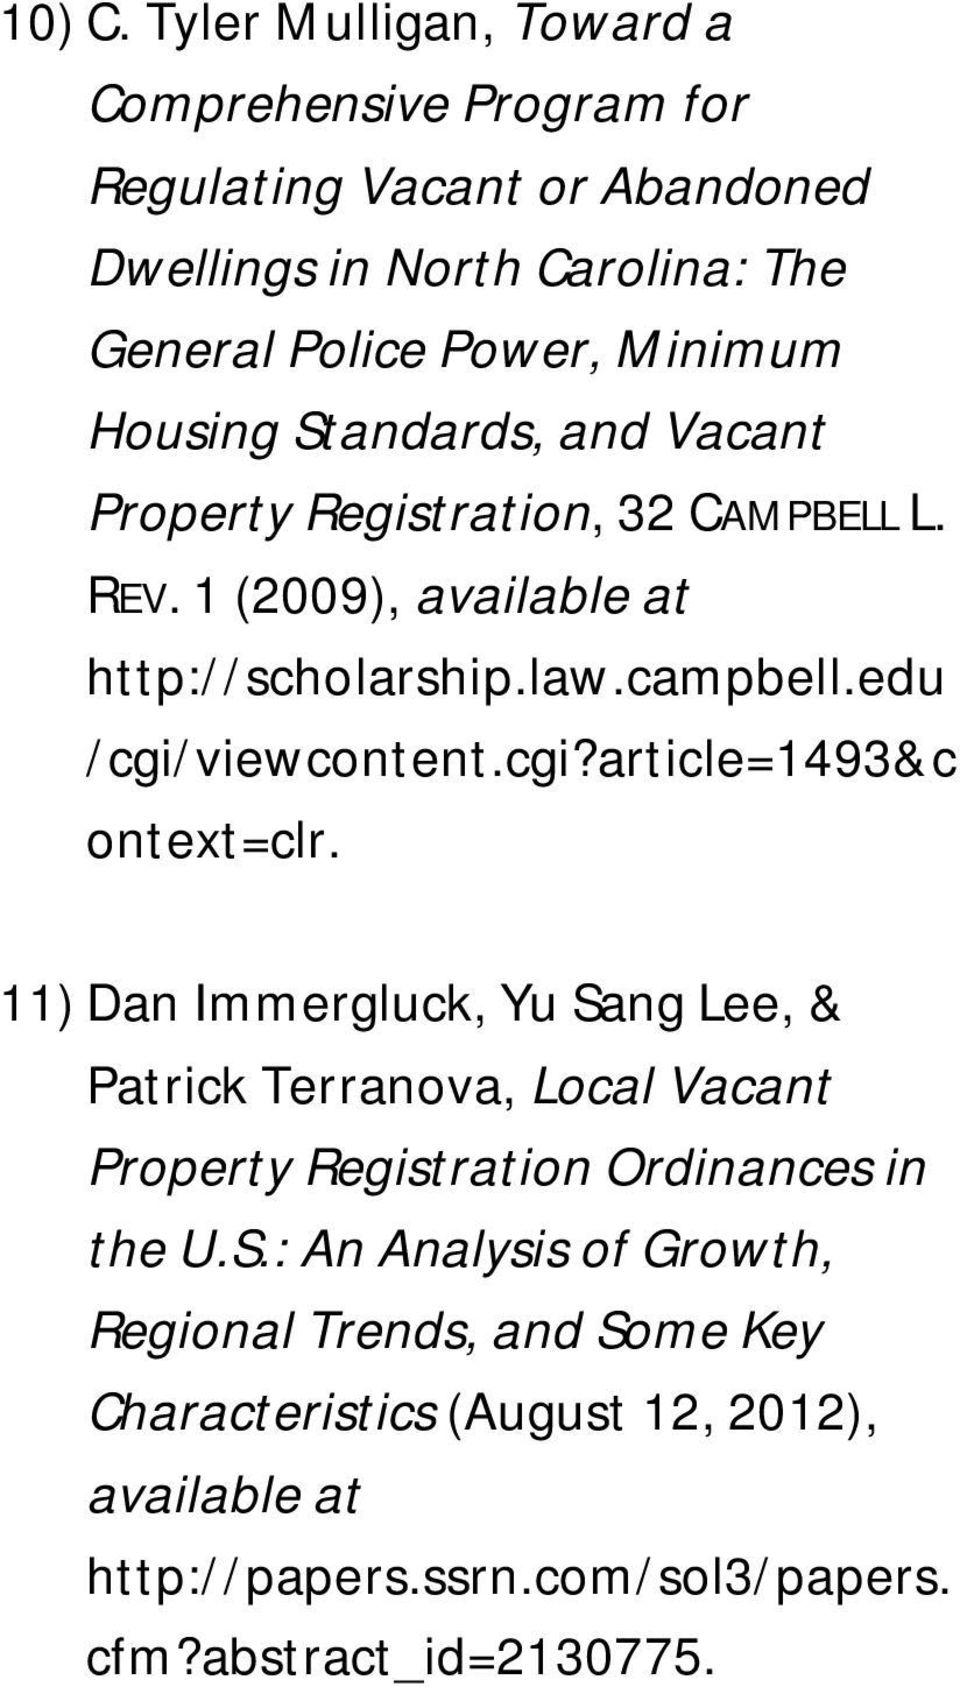 Housing Standards, and Vacant Property Registration, 32 CAMPBELL L. REV. 1 (2009), available at http://scholarship.law.campbell.edu /cgi/viewcontent.